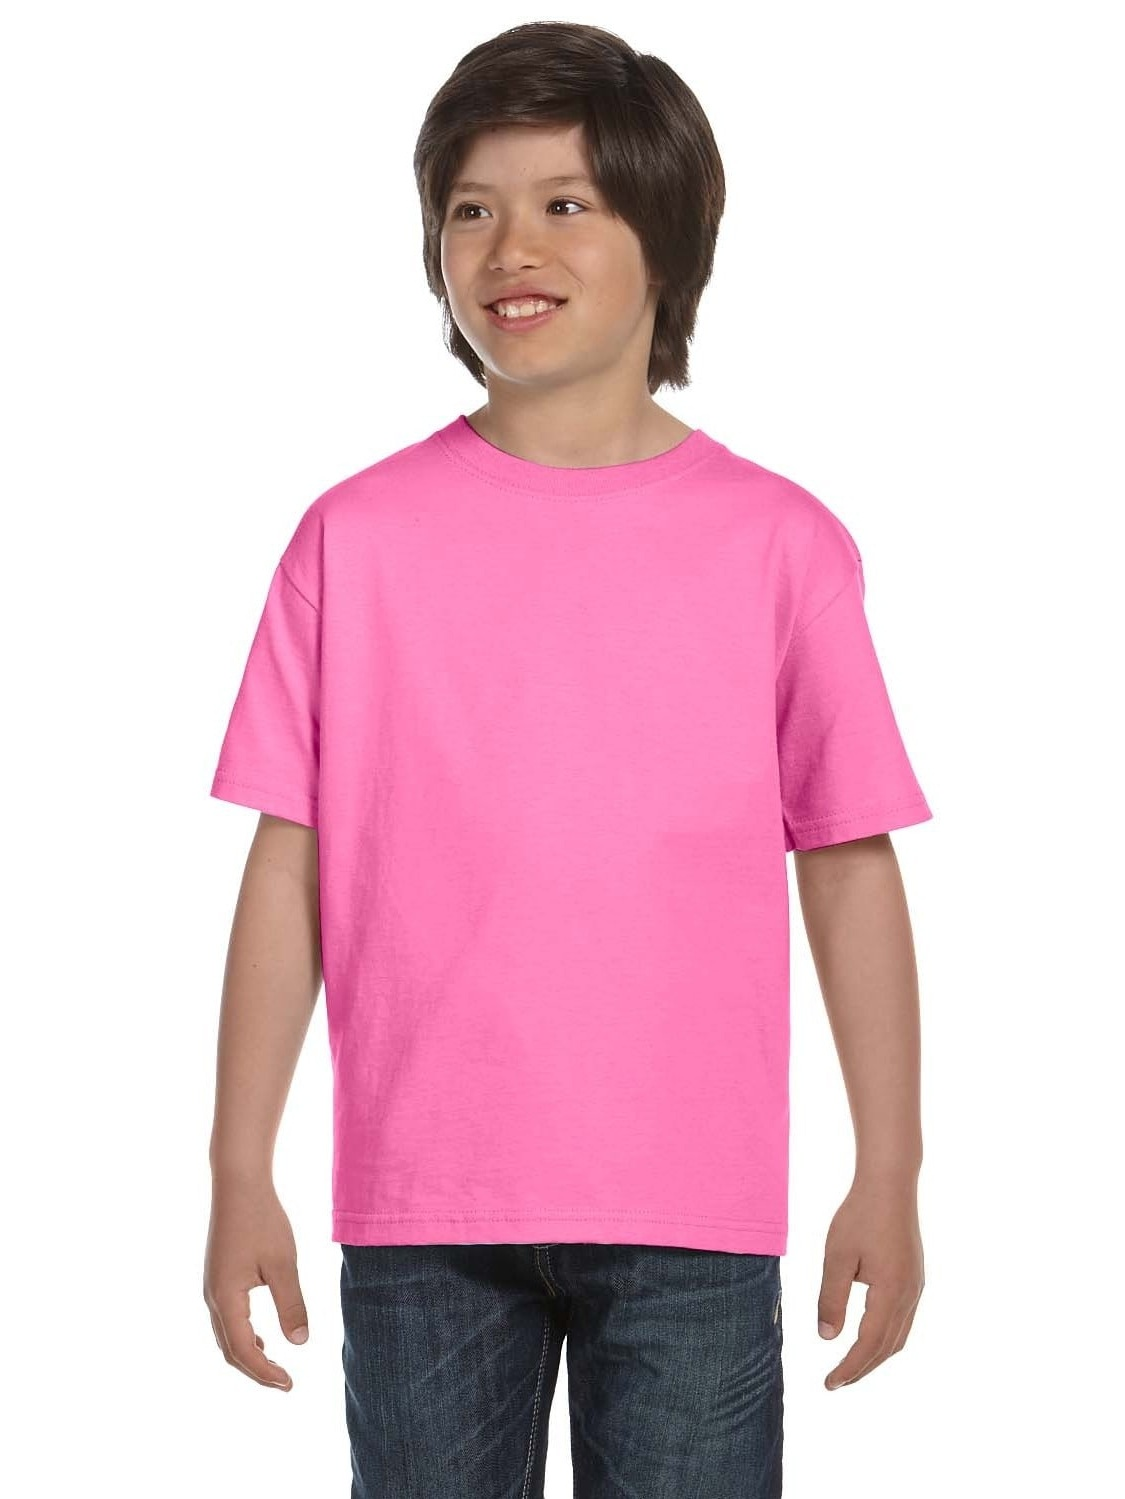 Hanes Beefy-T Boys' T-Shirt Pink